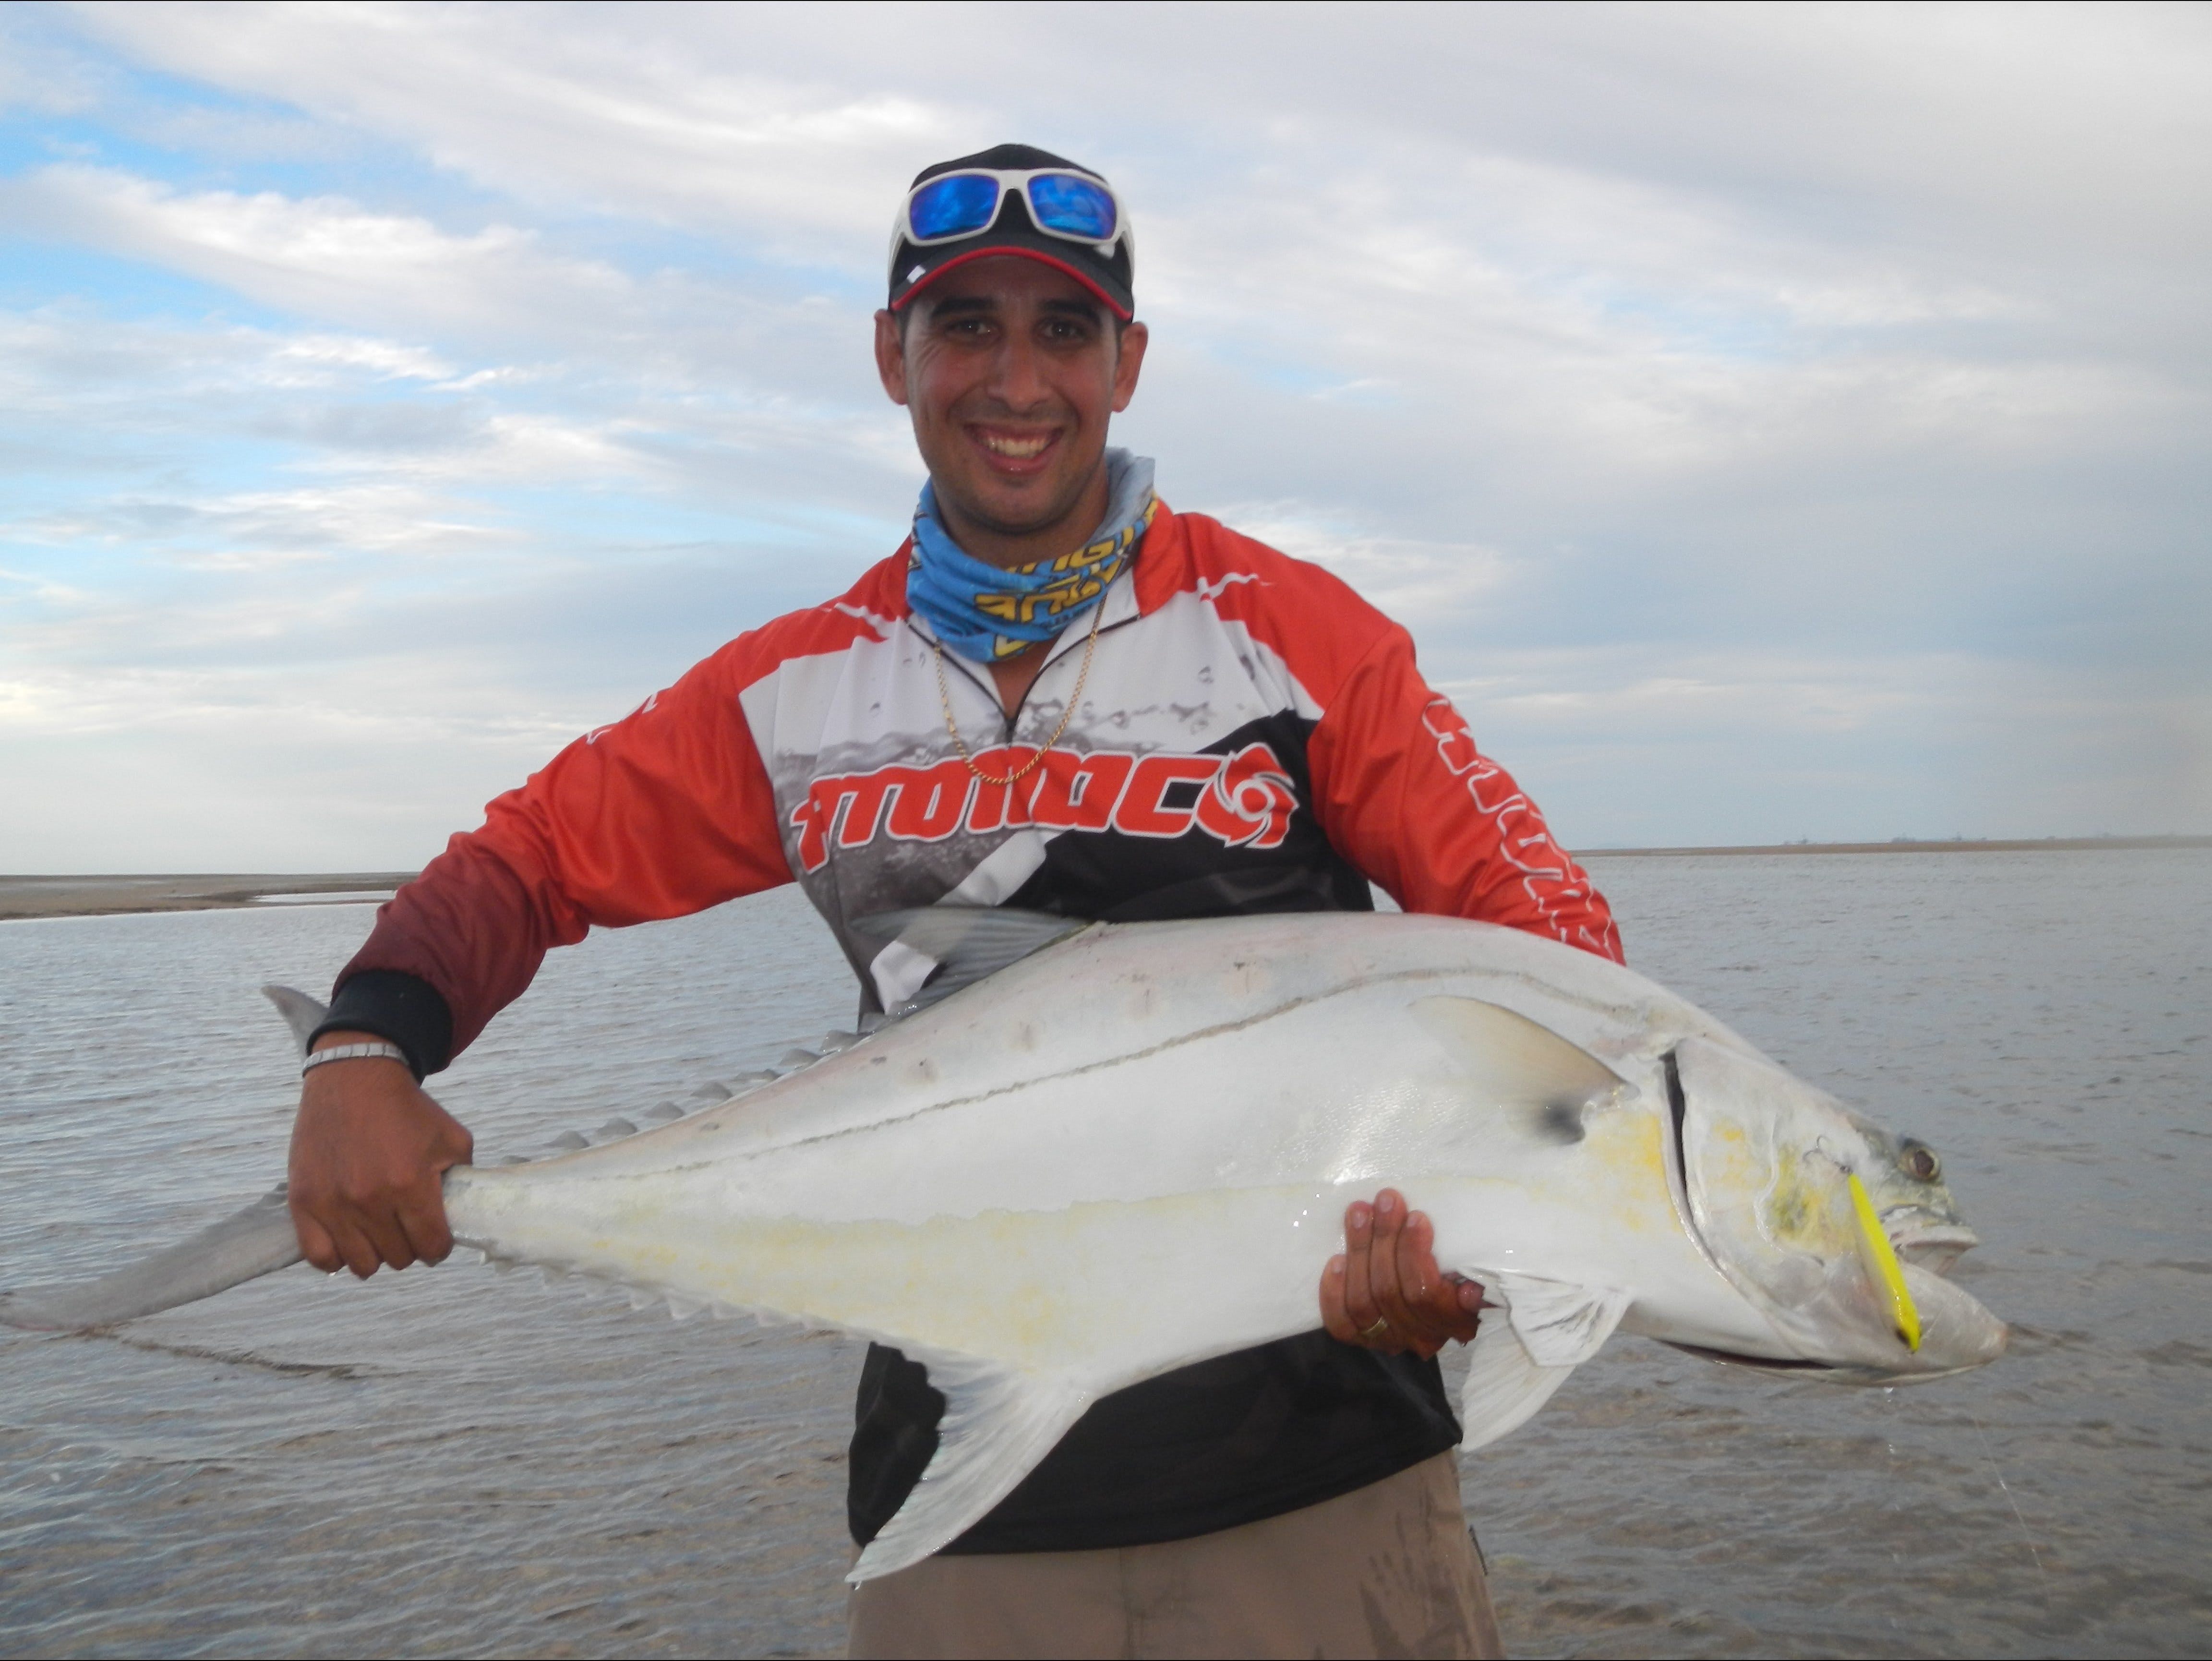 Reel in a Trophy - Fishing Adventure in Tropical Queensland! Logo and Images